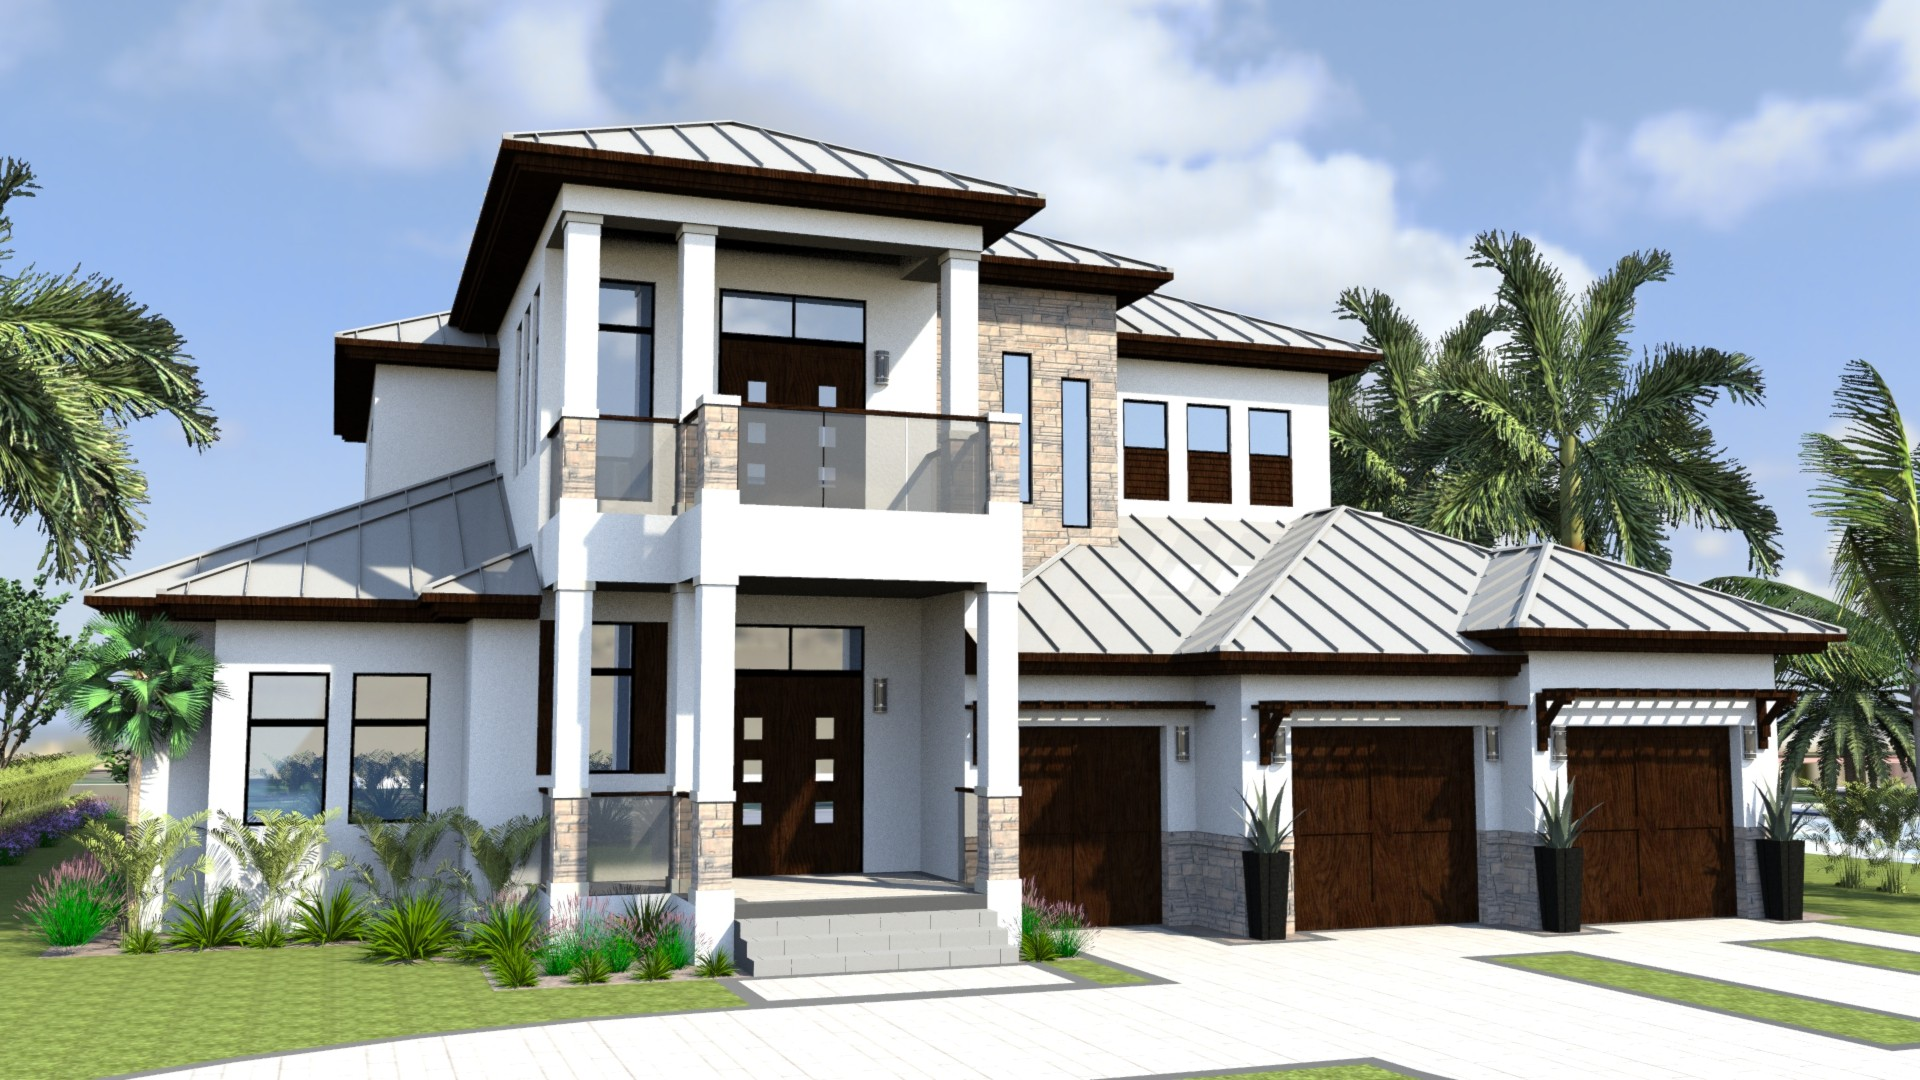 Florida house plans florida house plans cloverdale 30 for Florida house designs